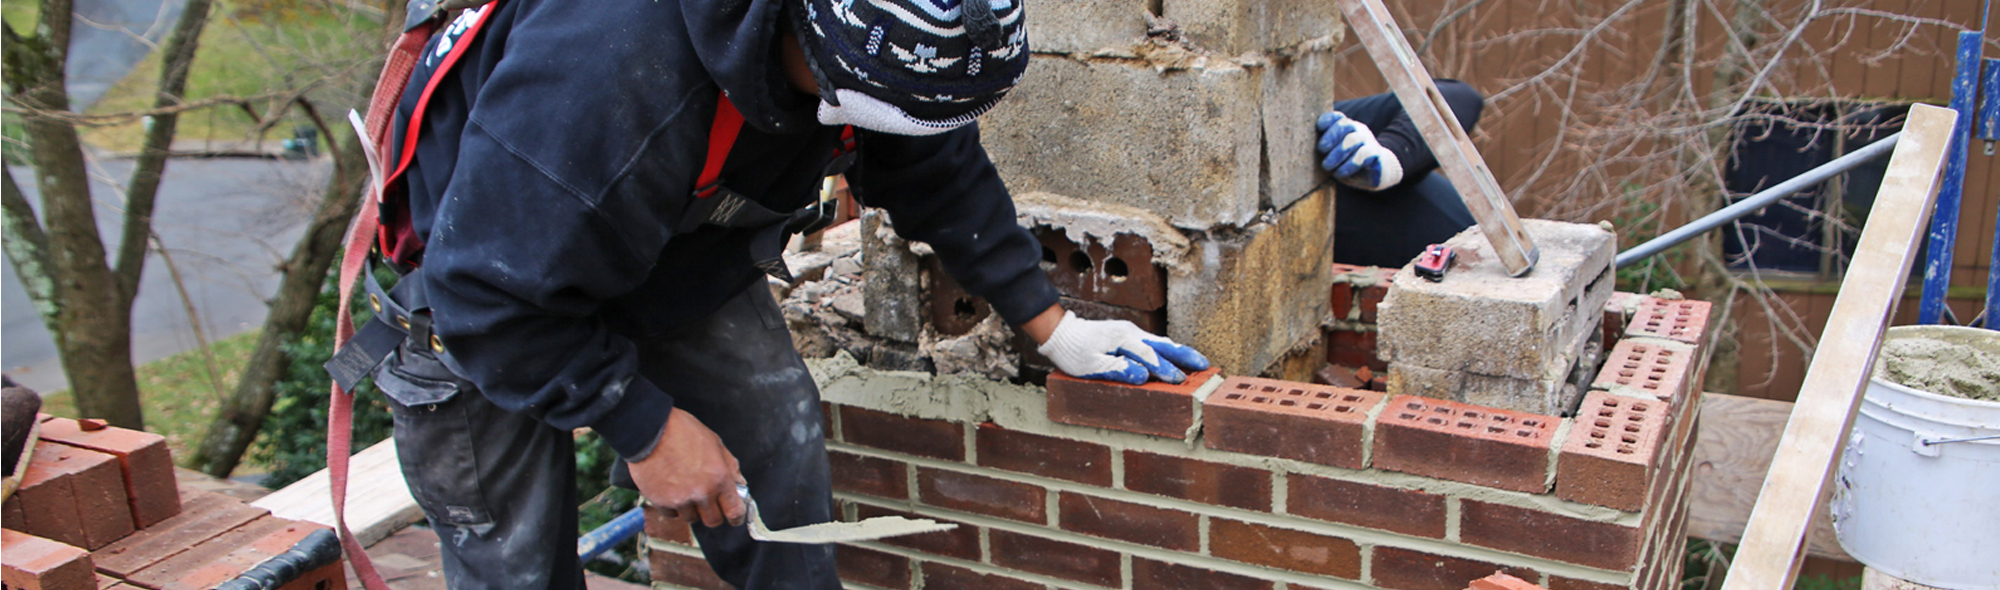 masonry repair in gaithersburg md